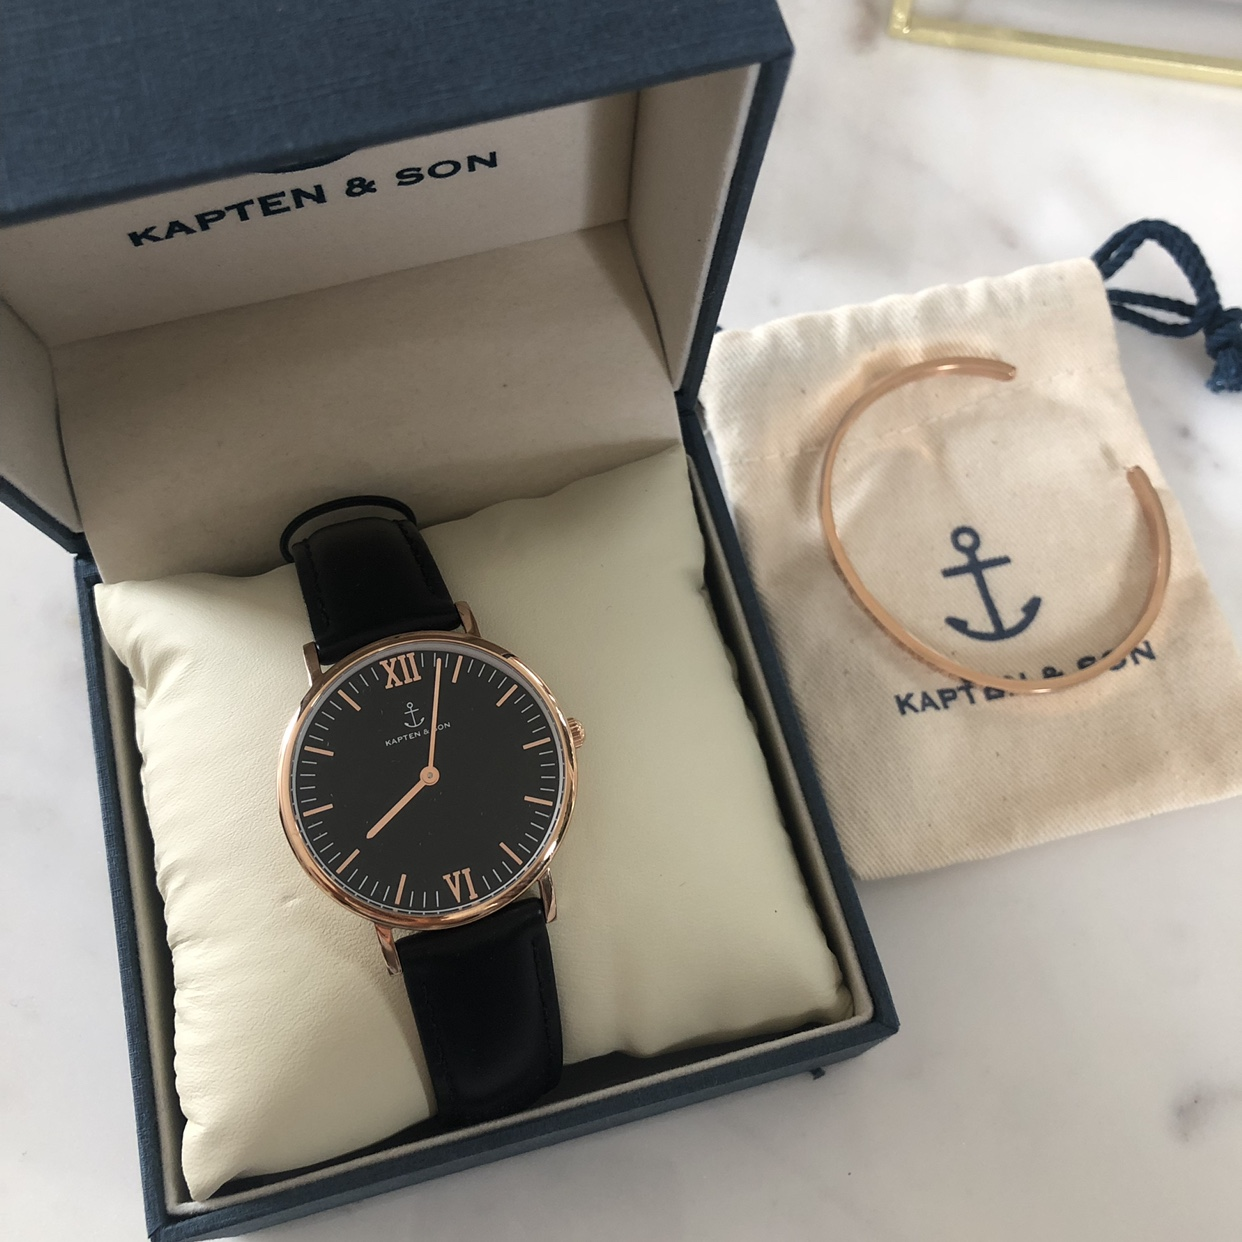 Kapten & Son watch and bangle, black leather strap,    - Depop